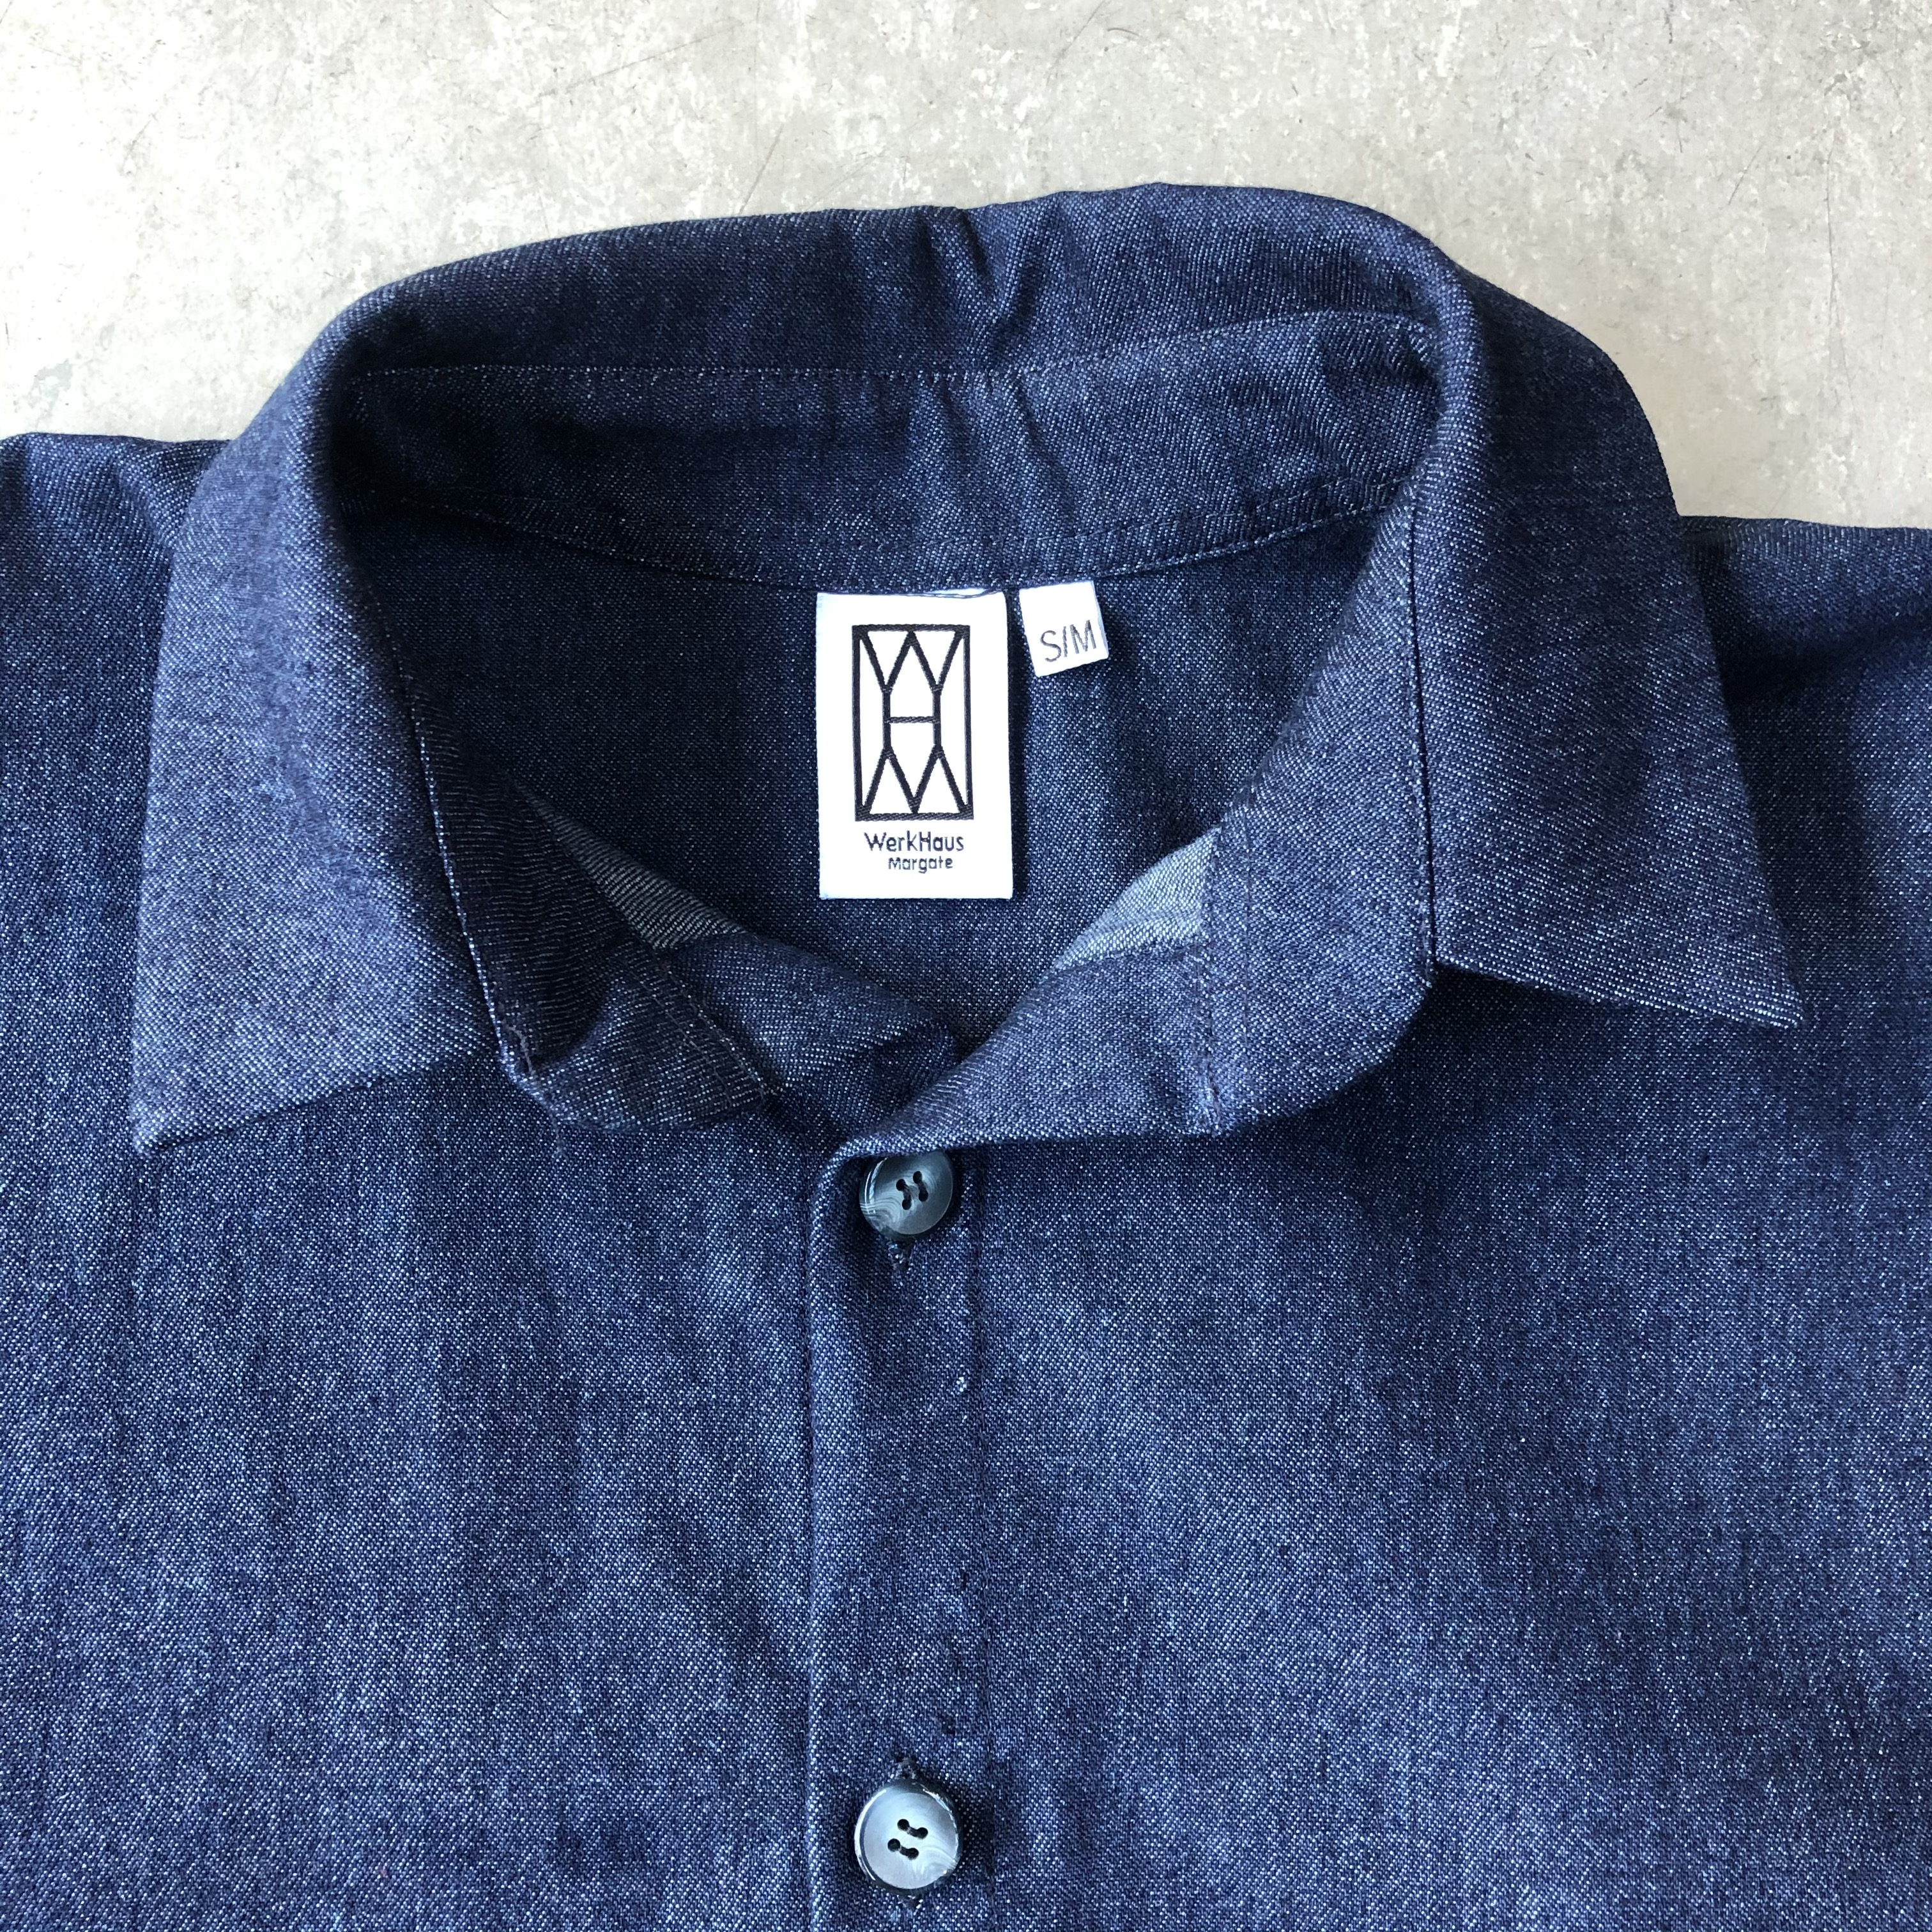 WerkHaus Margate denim shirt-dress